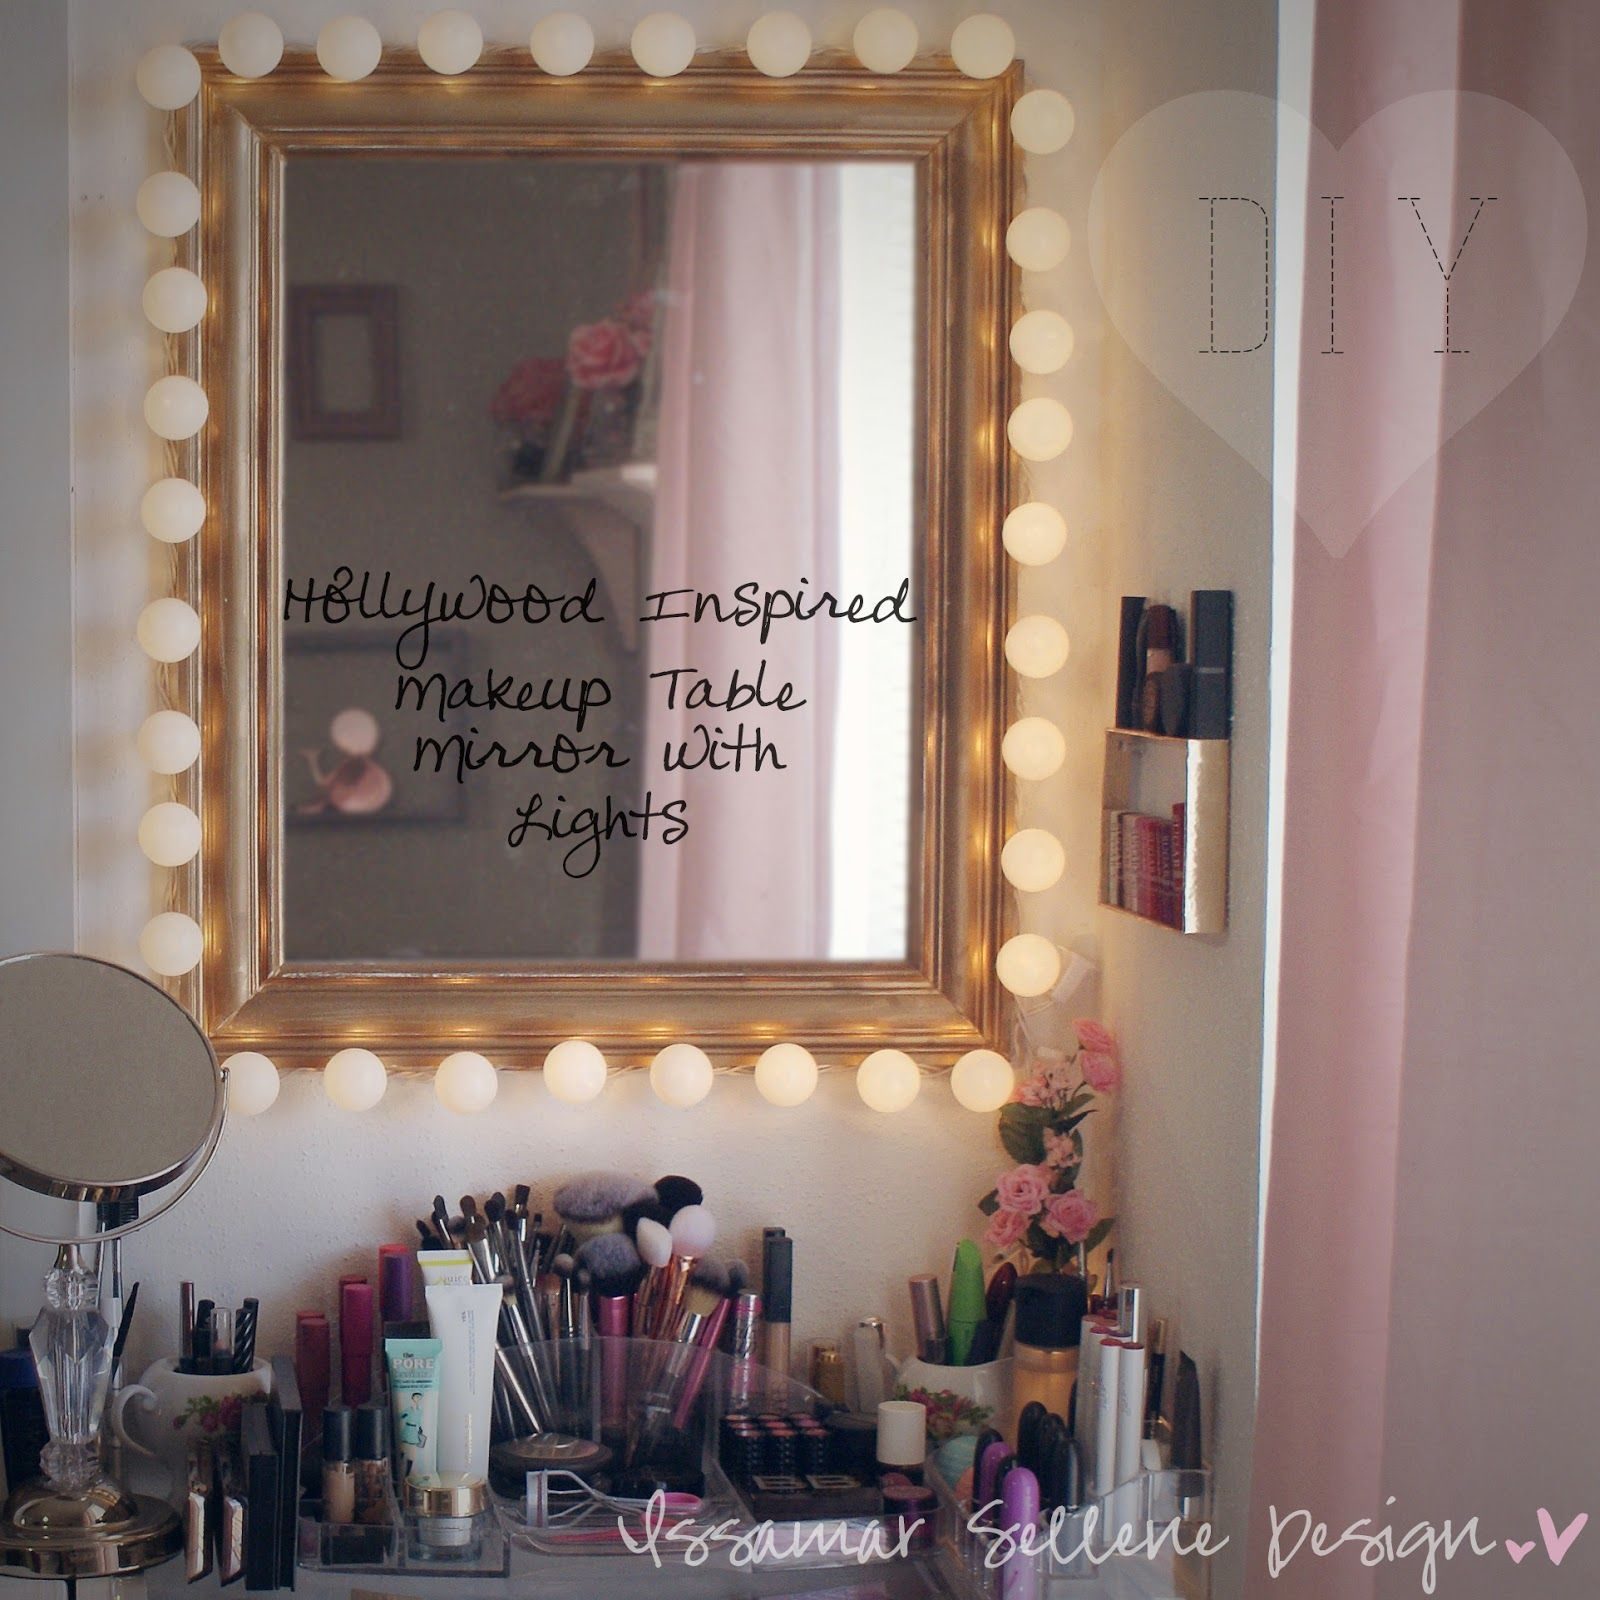 Diy Vanity Mirror With Rope Lights : DIY: Hollywood Inspired Makeup Table Mirror Lights - Make your own vanity mirror, it s so easy ...